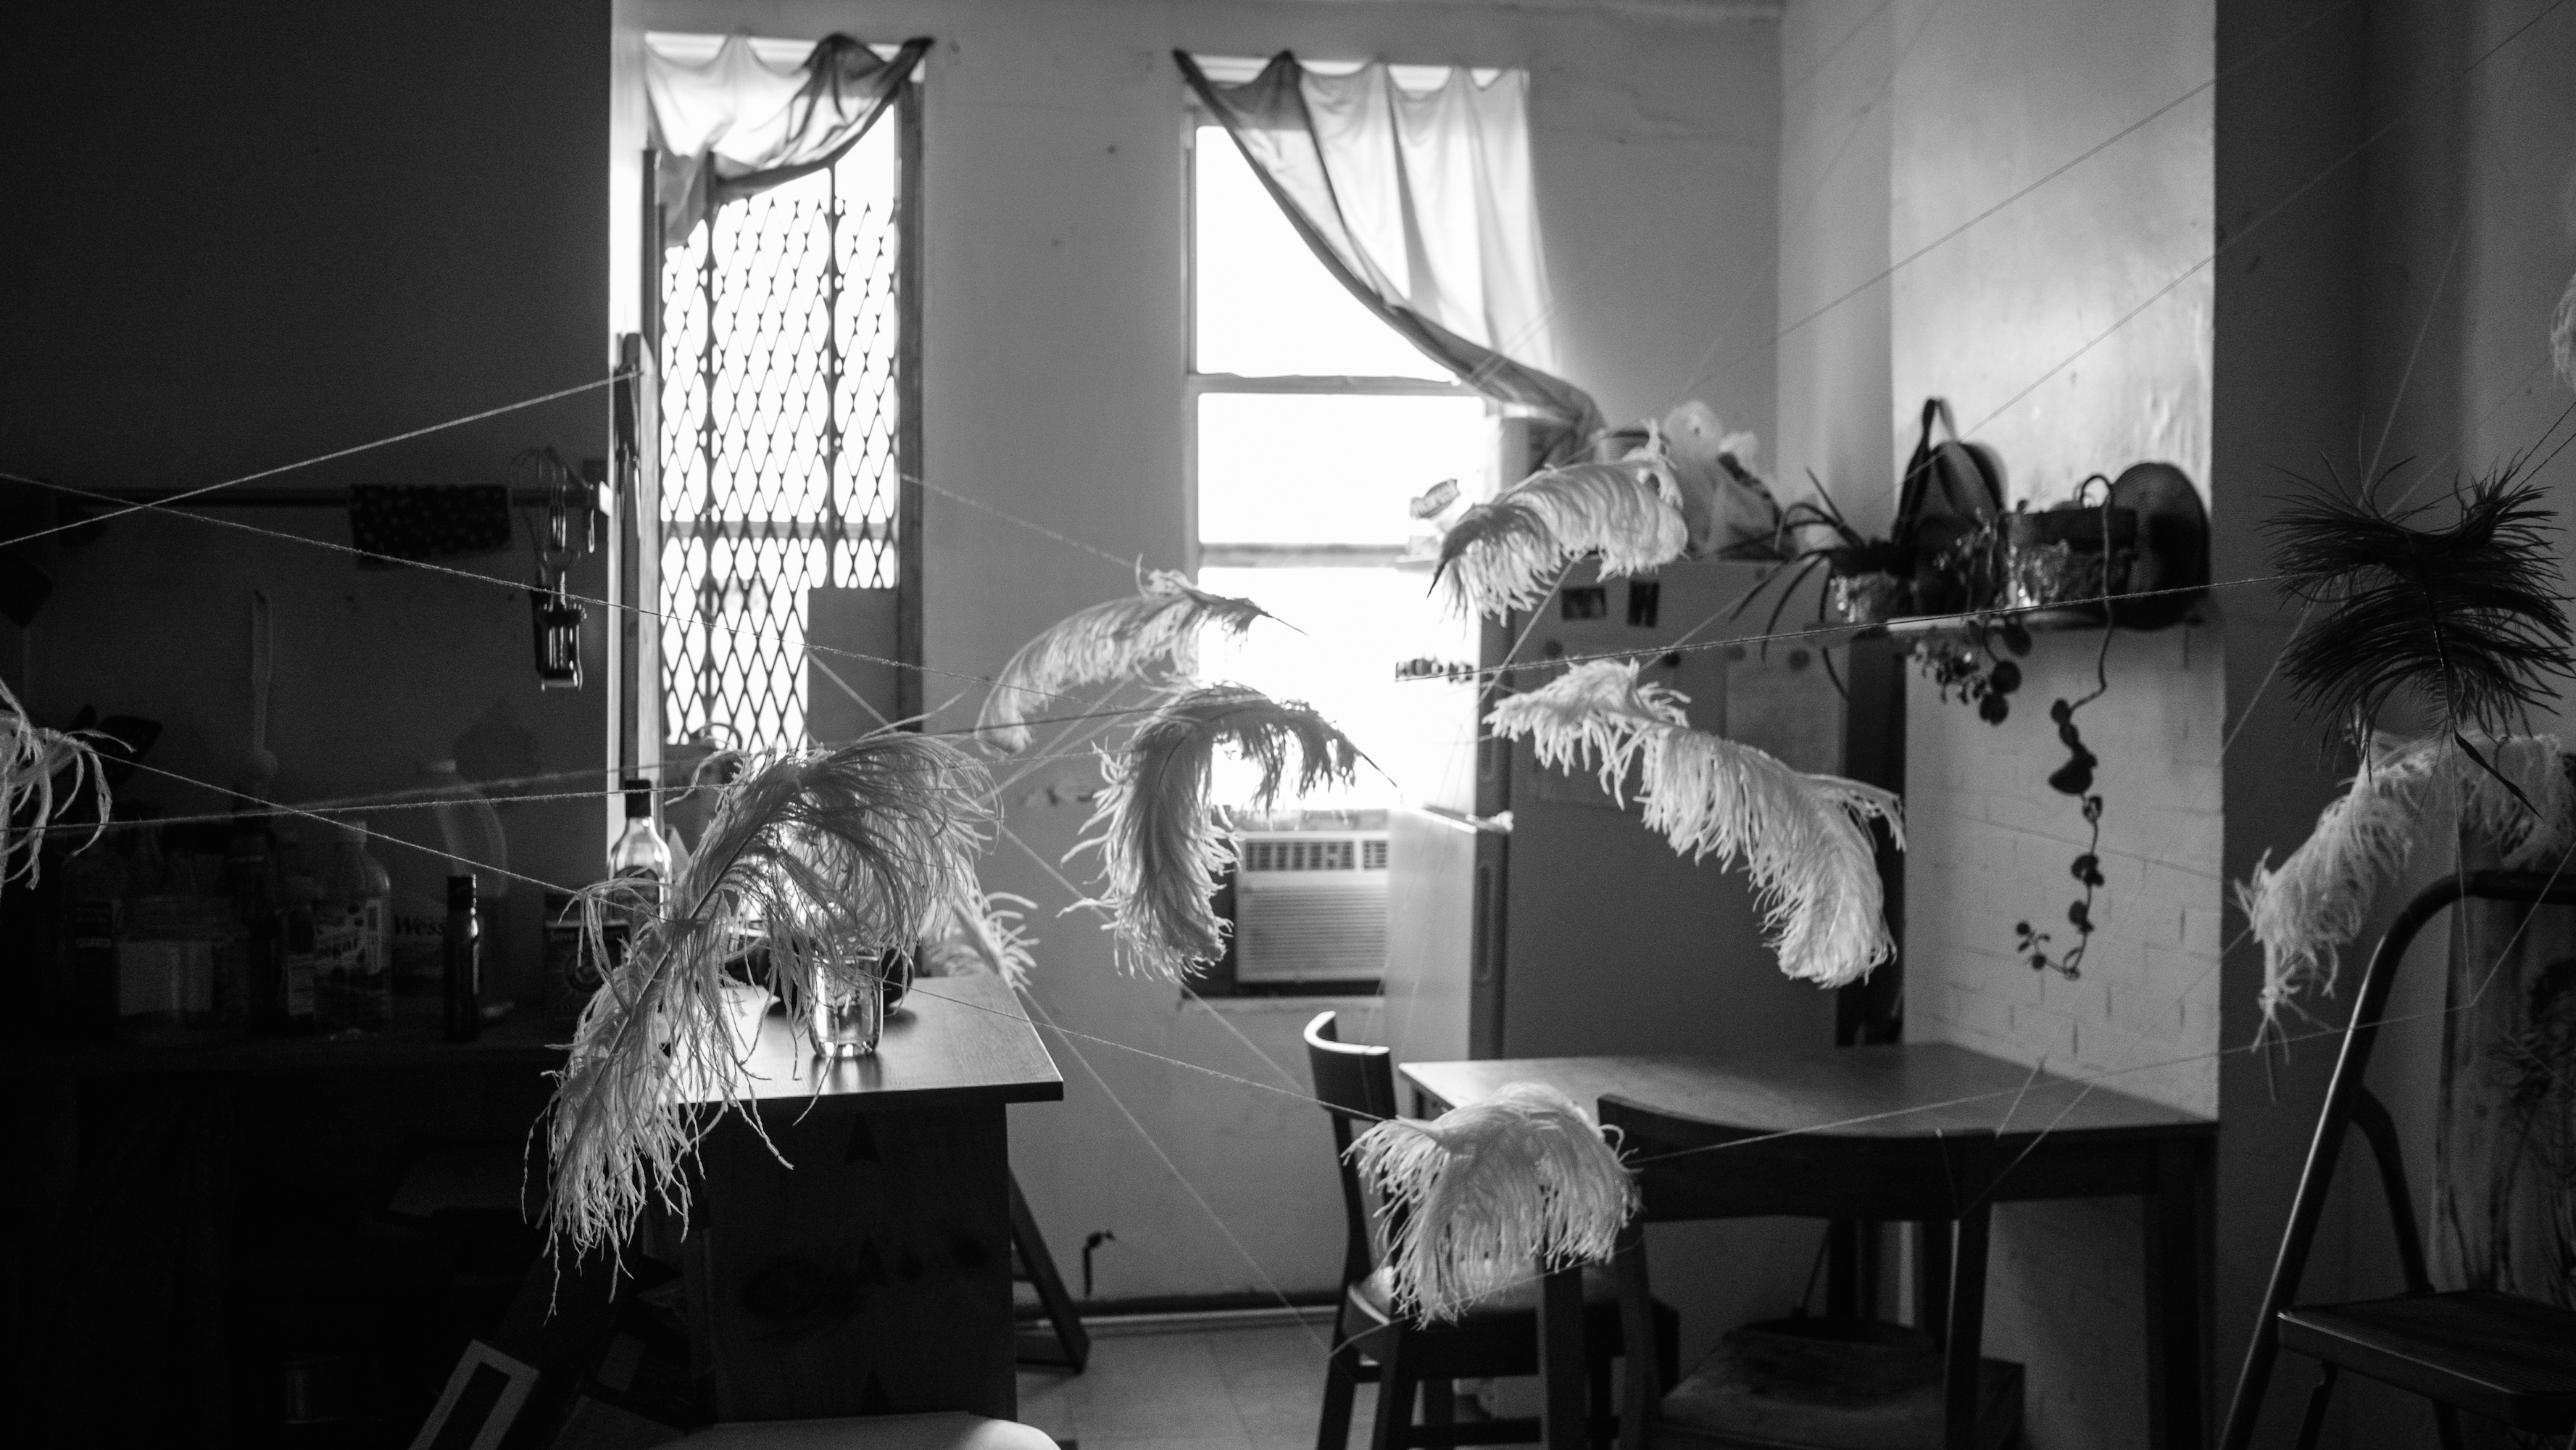 feathers installation whitney biennale (5 of 10)